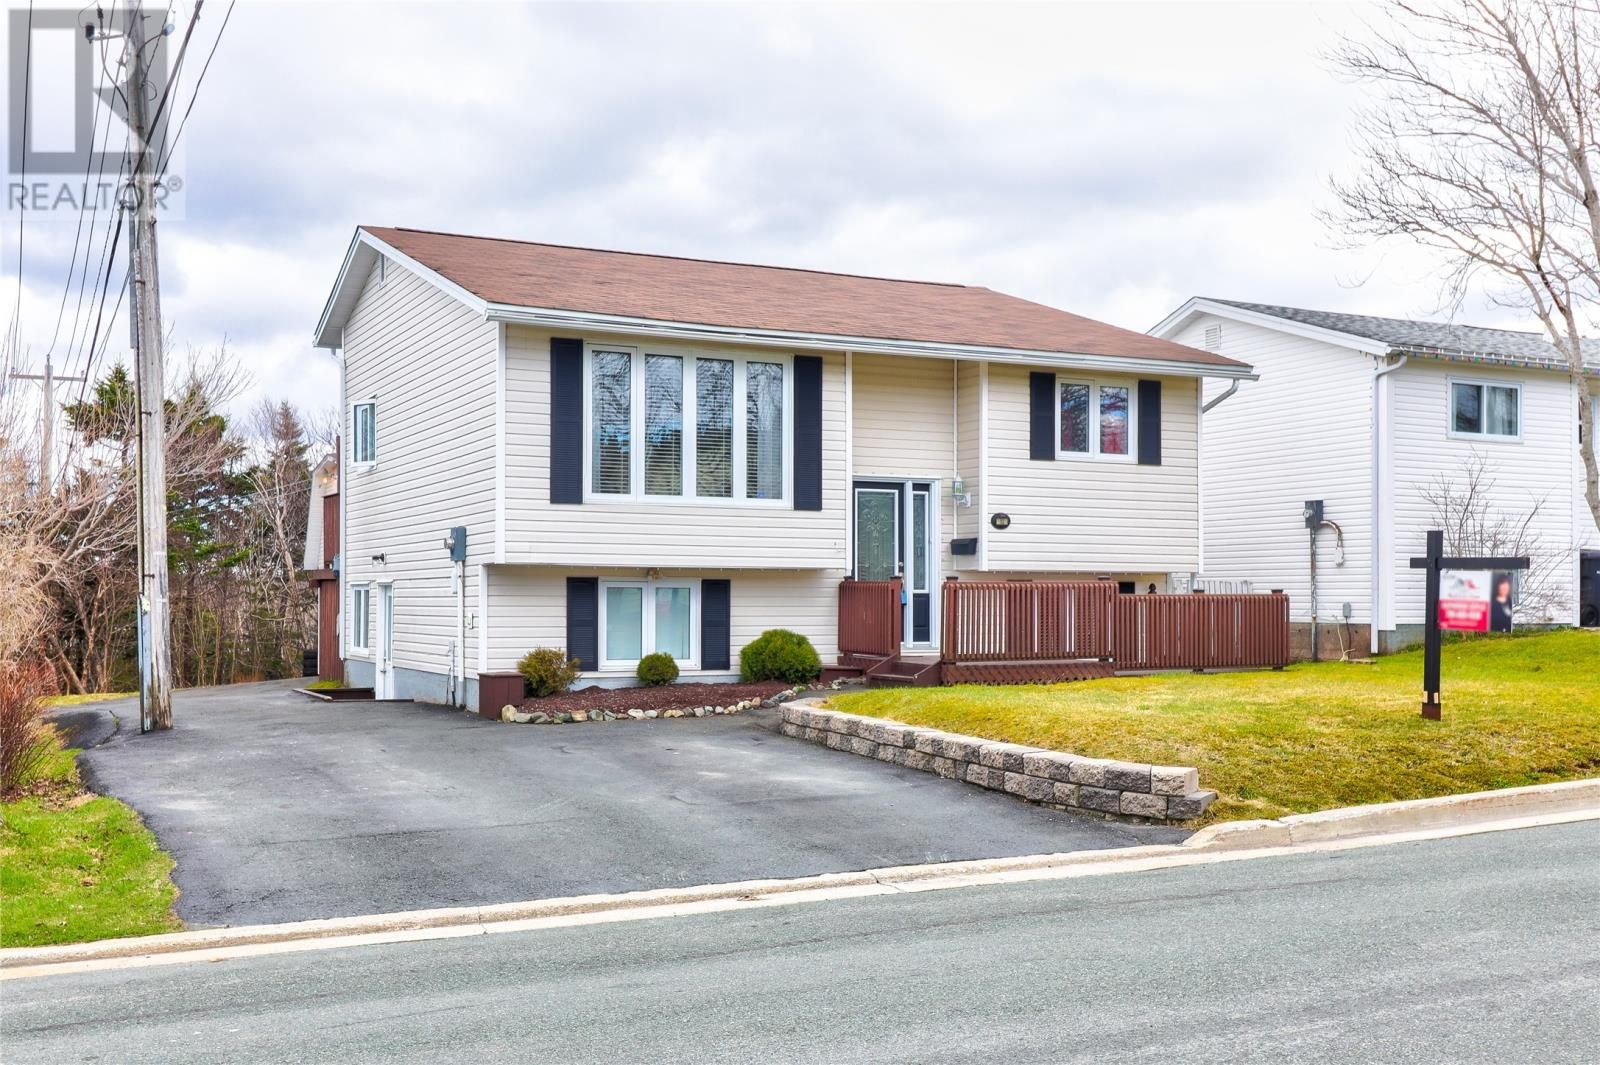 Main Photo: 12 Blandford Place in Mount Pearl: House for sale : MLS®# 1229687